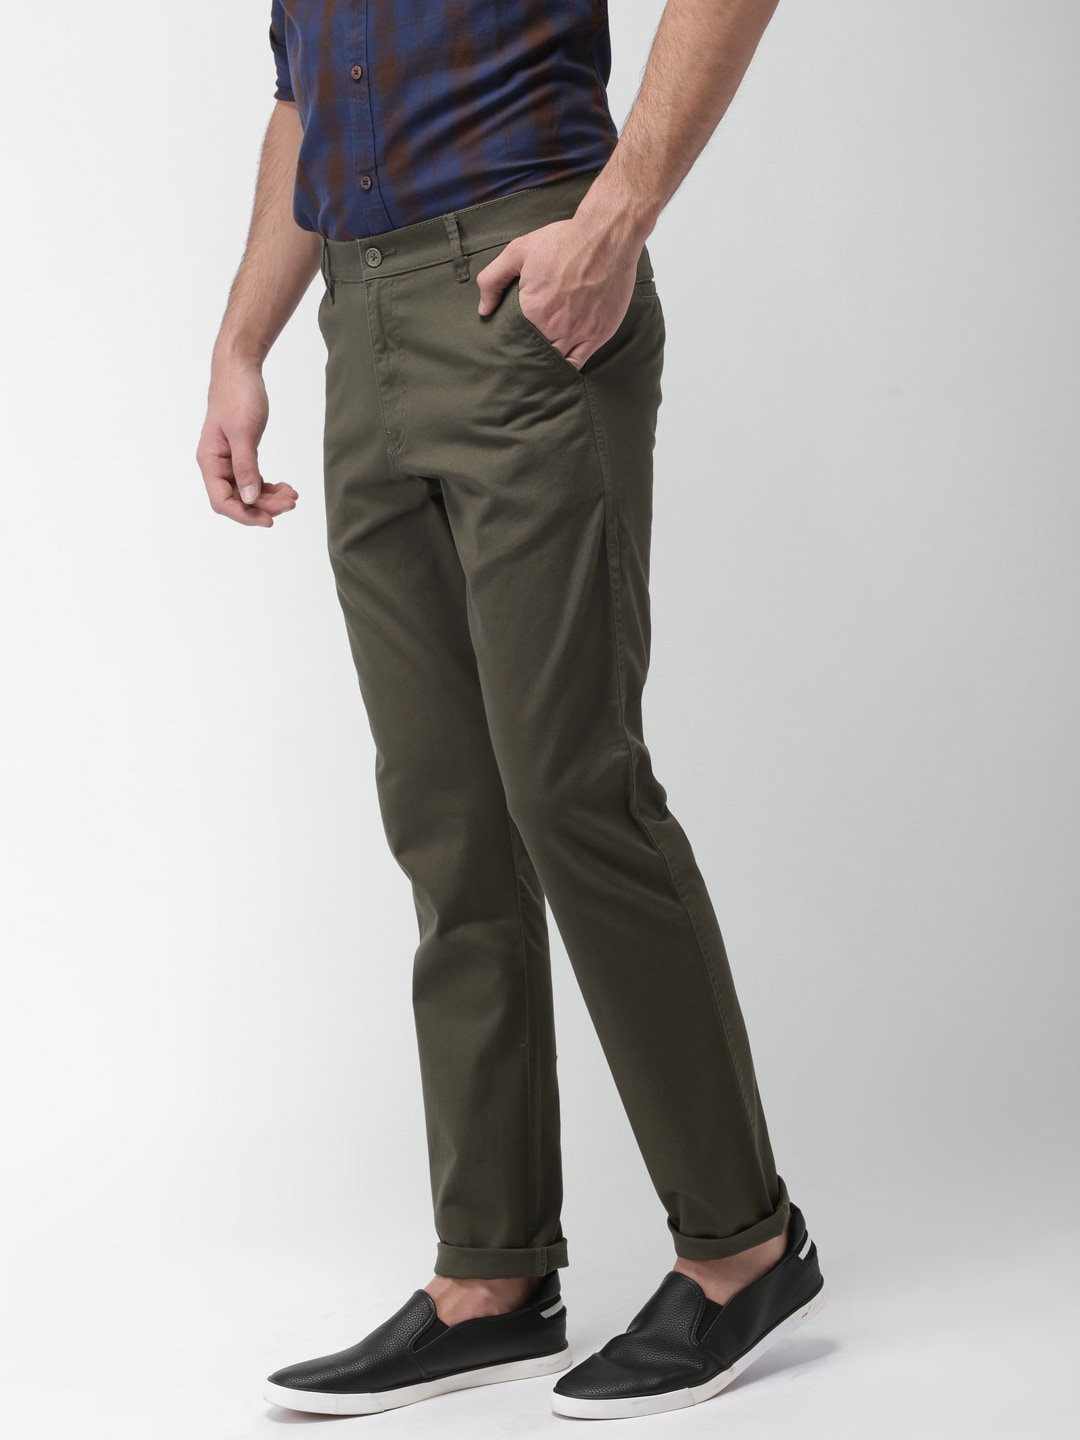 Trousers For Men - Buy Mens Trousers Pants Online - Myntra a30b551bc